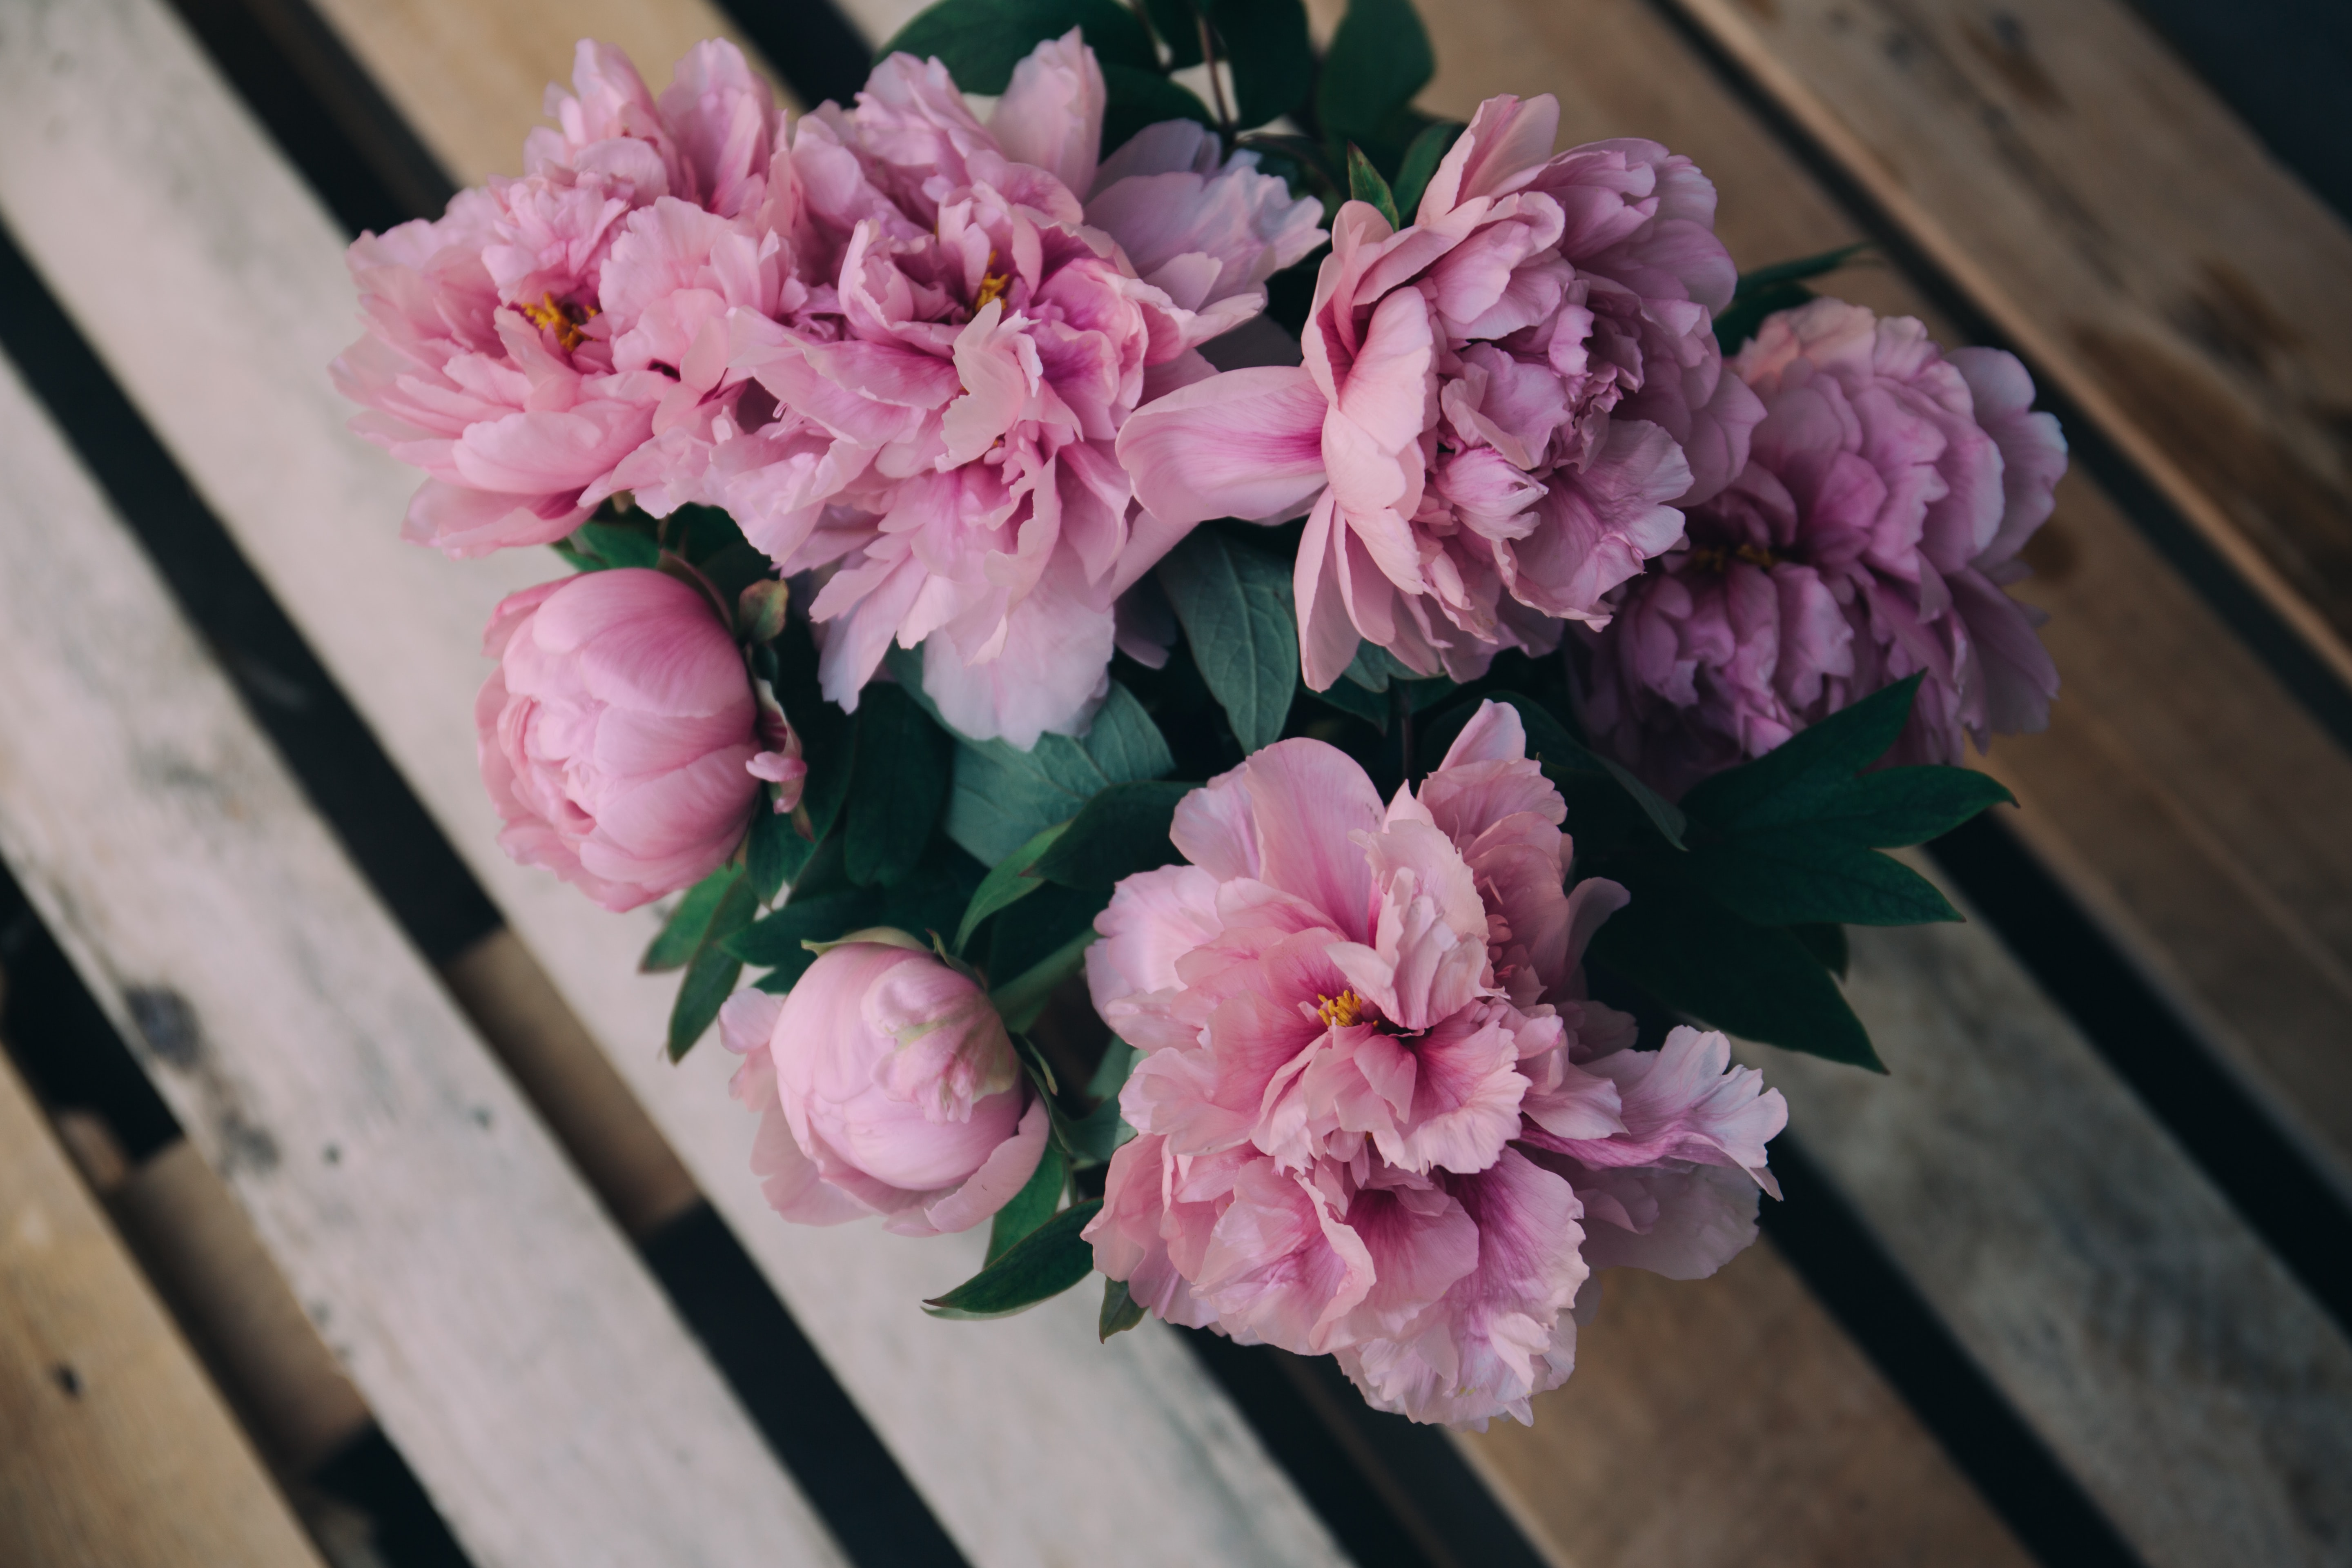 Flower, pink, floral and spring HD photo by Alisa Anton